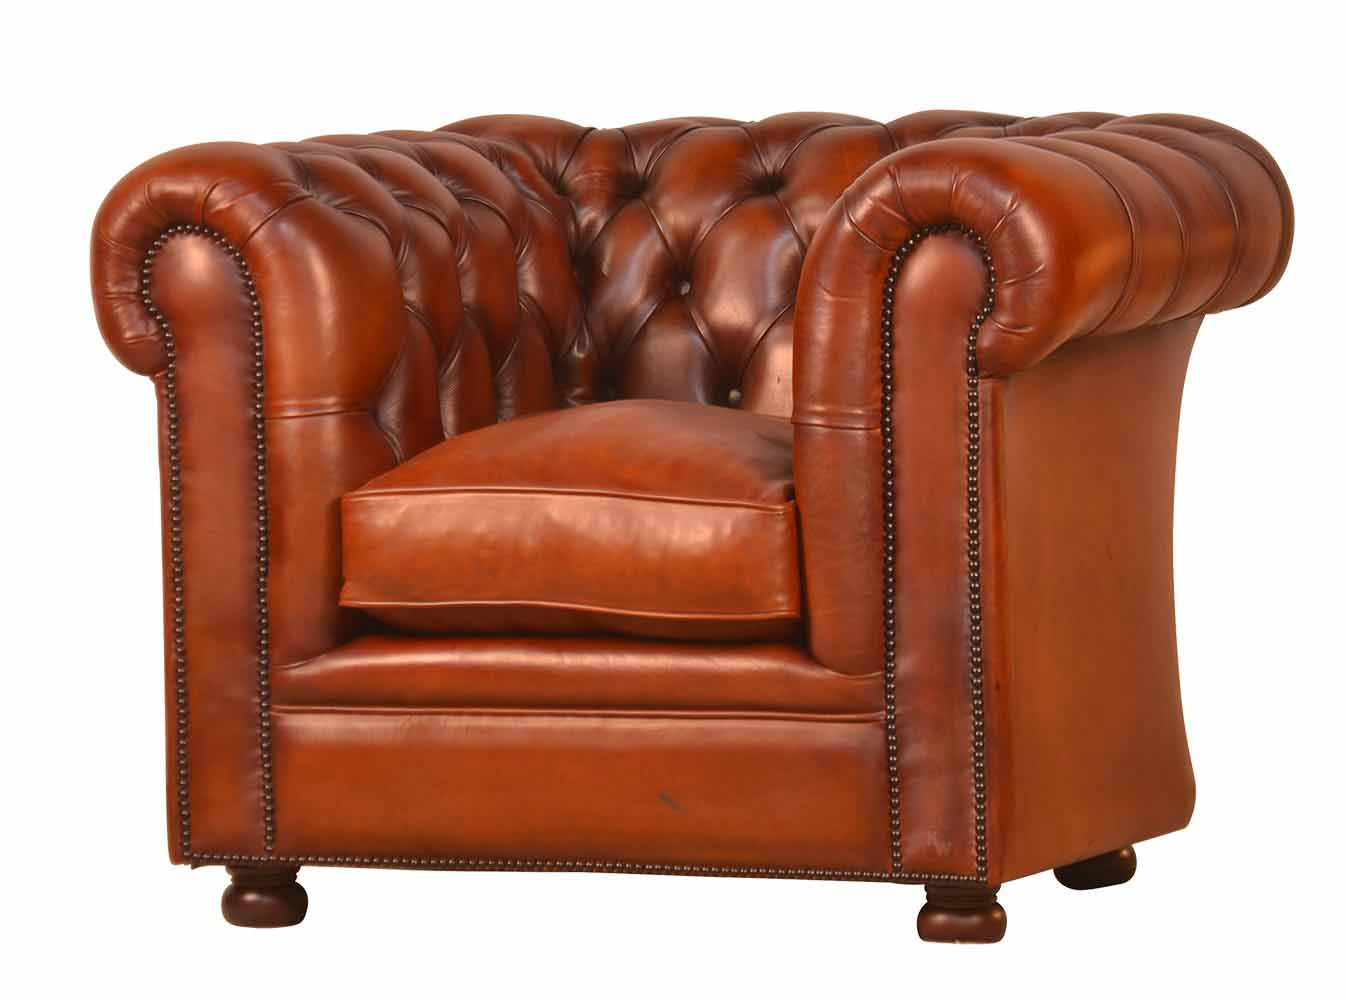 Sessel Chesterfield Chesterfield Sessel Ledermöbel Von Kai Wiechmann De